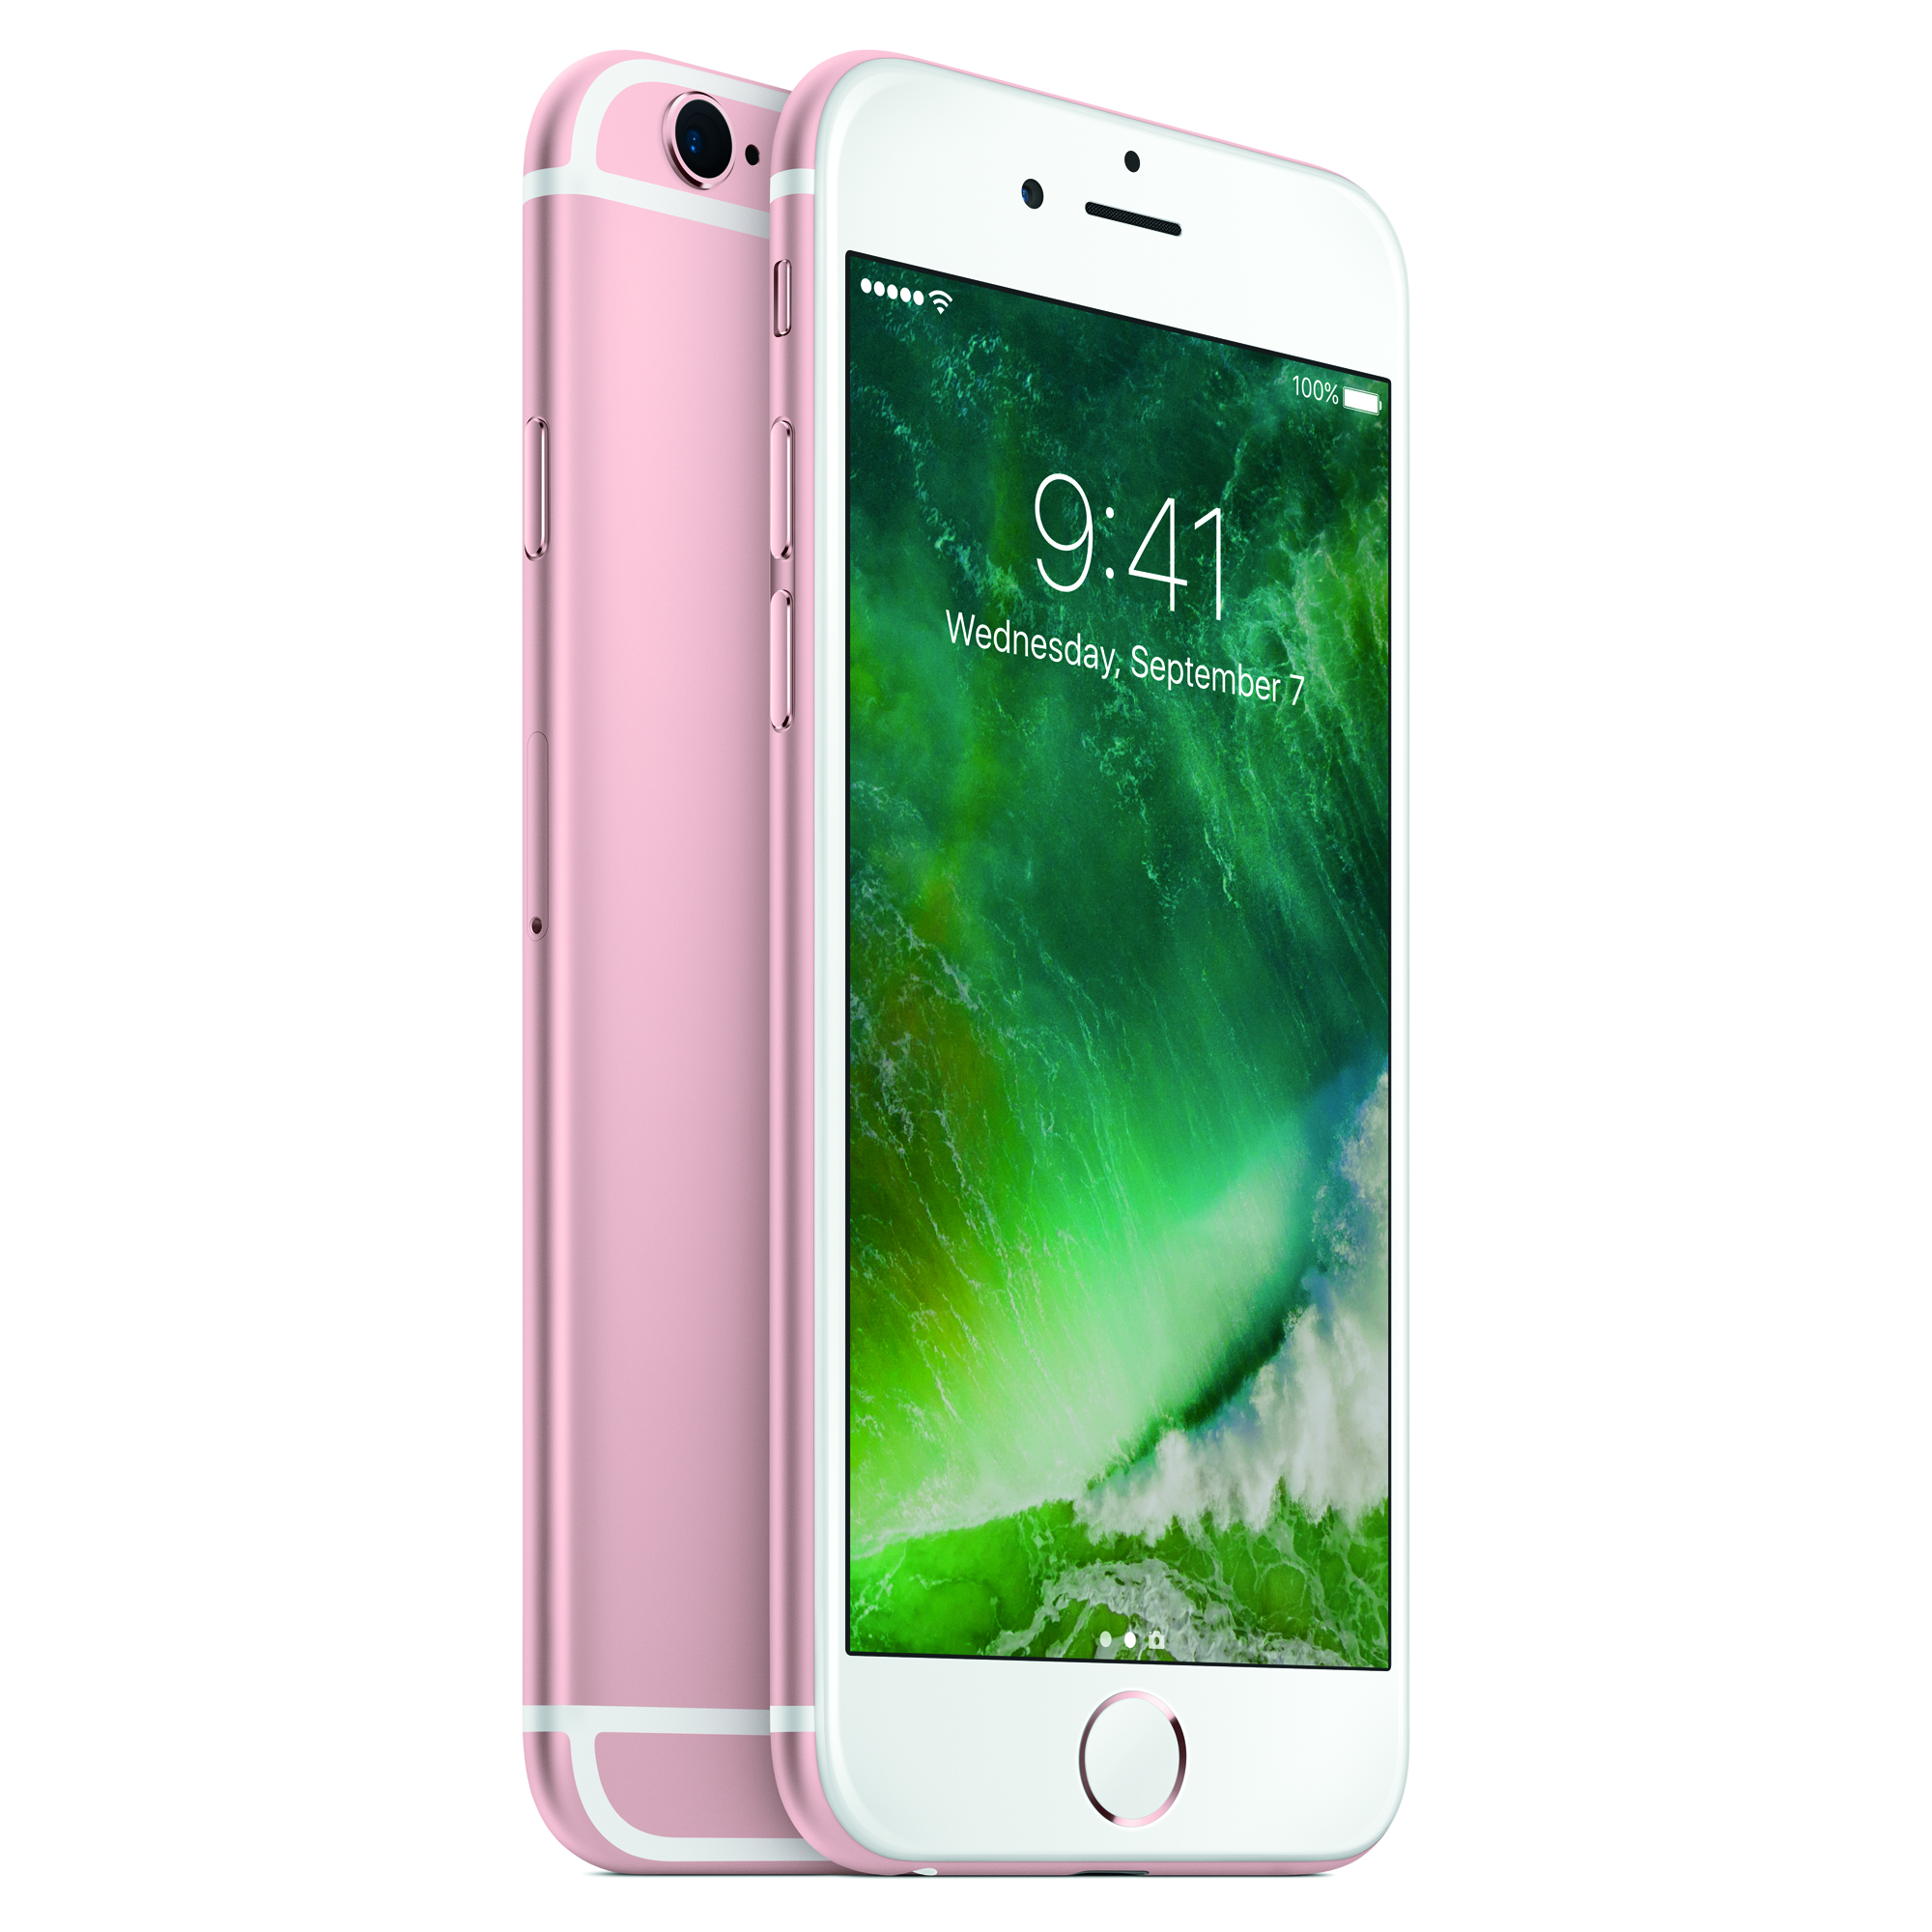 Net10 Apple iPhone 6s 32GB Prepaid Smartphone, Rose Gold